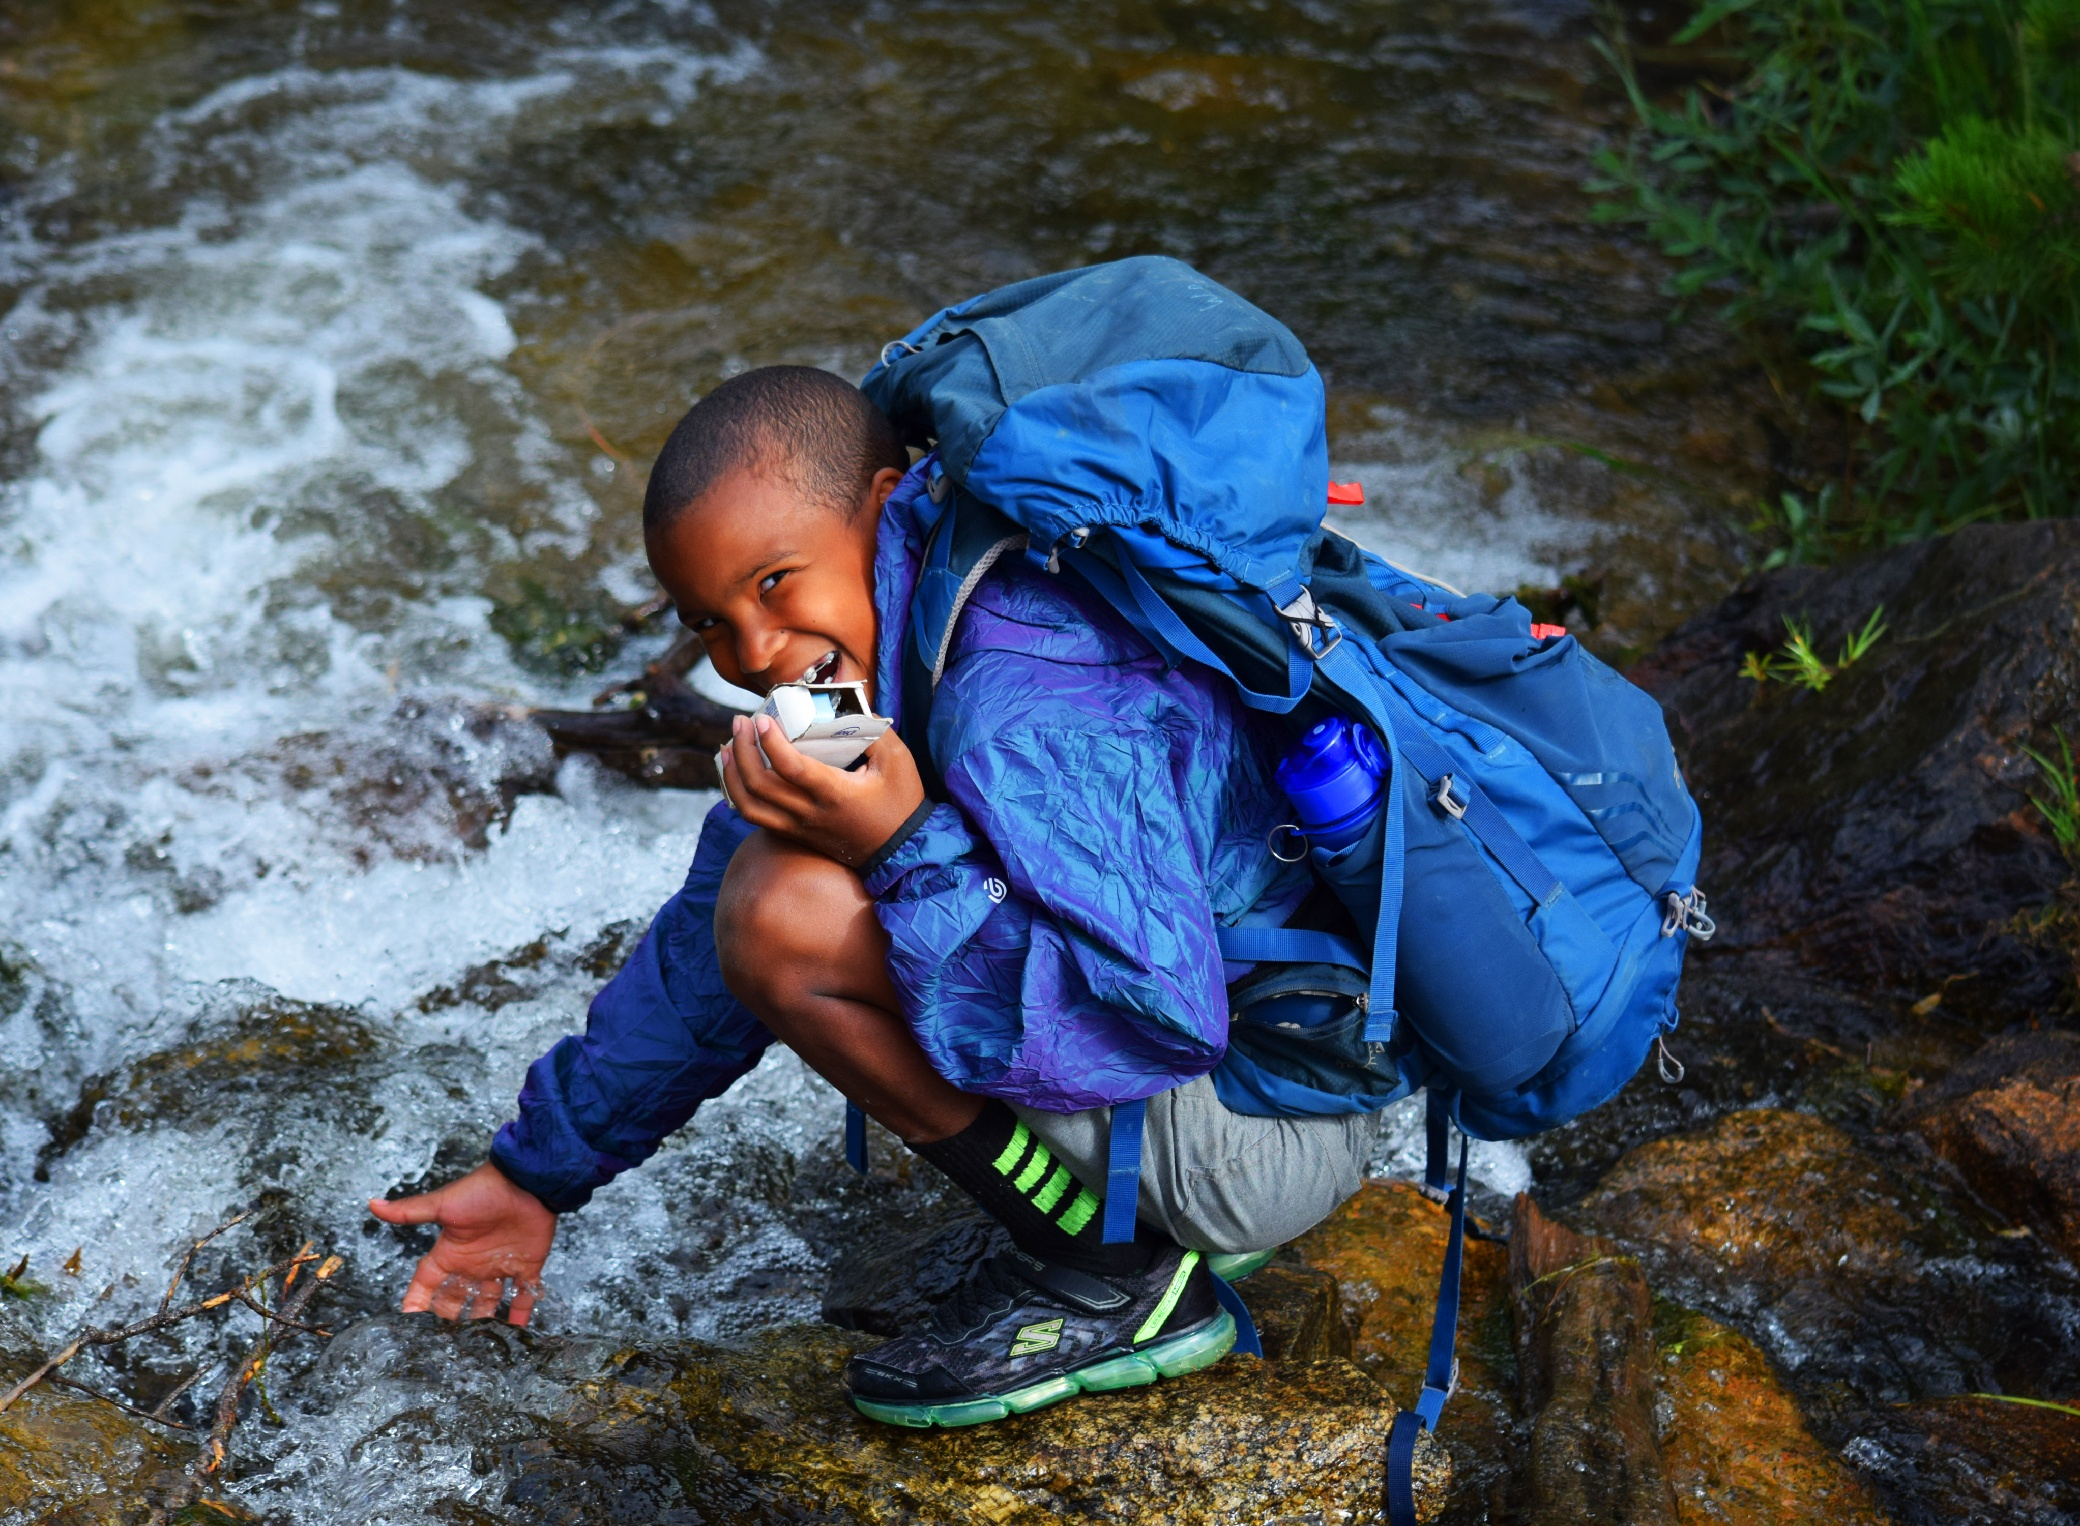 kid smiling near river on backpacking trip